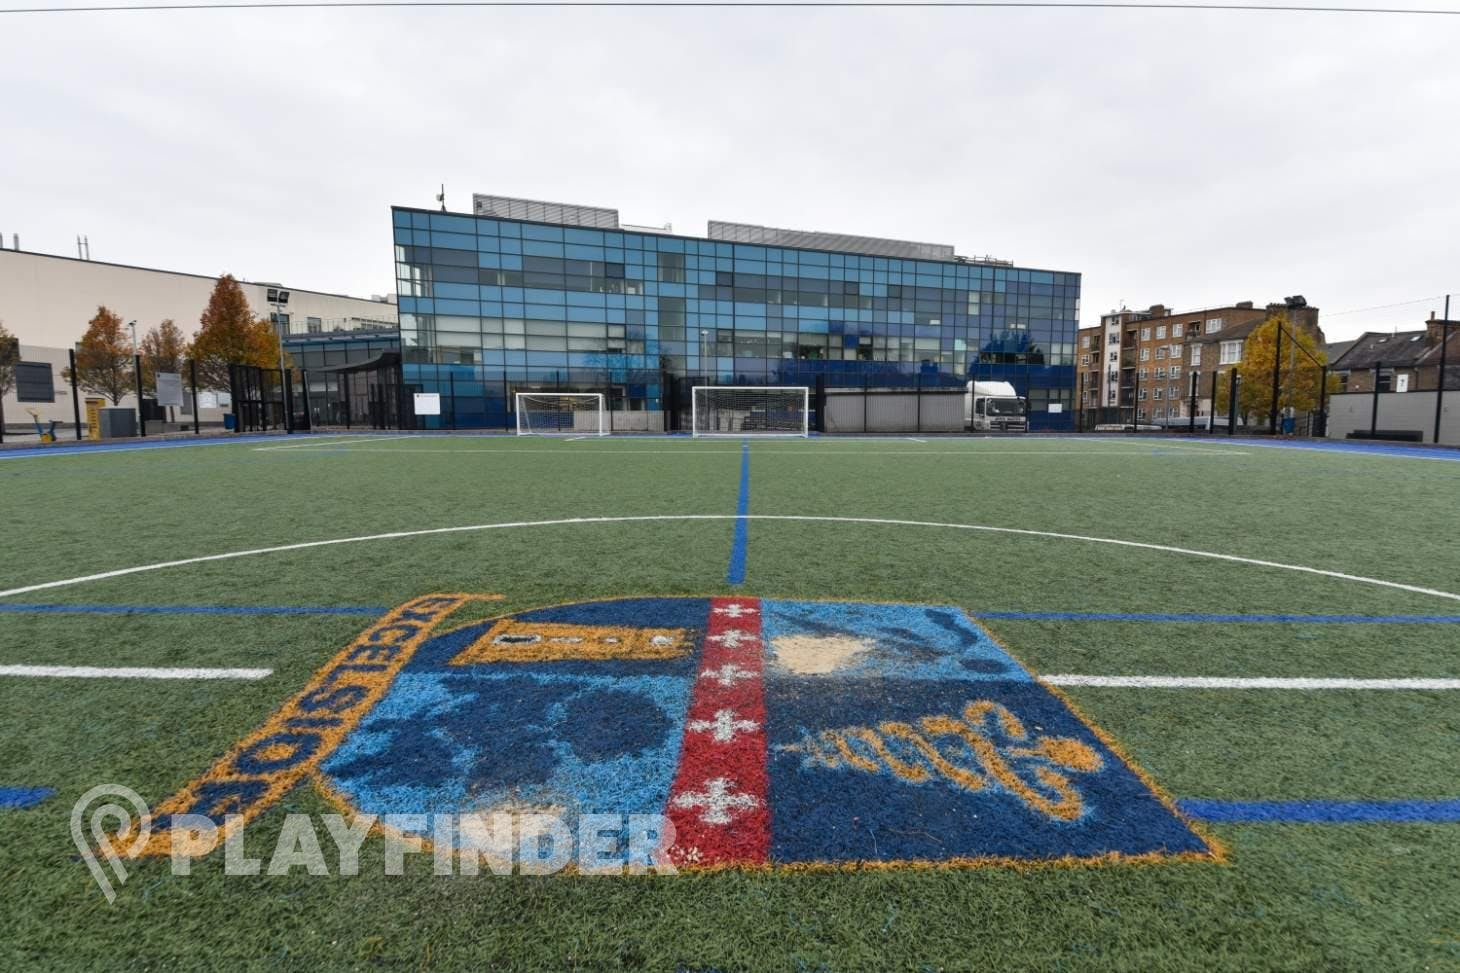 The Petchey Academy Sports Club 7 a side | 3G Astroturf football pitch